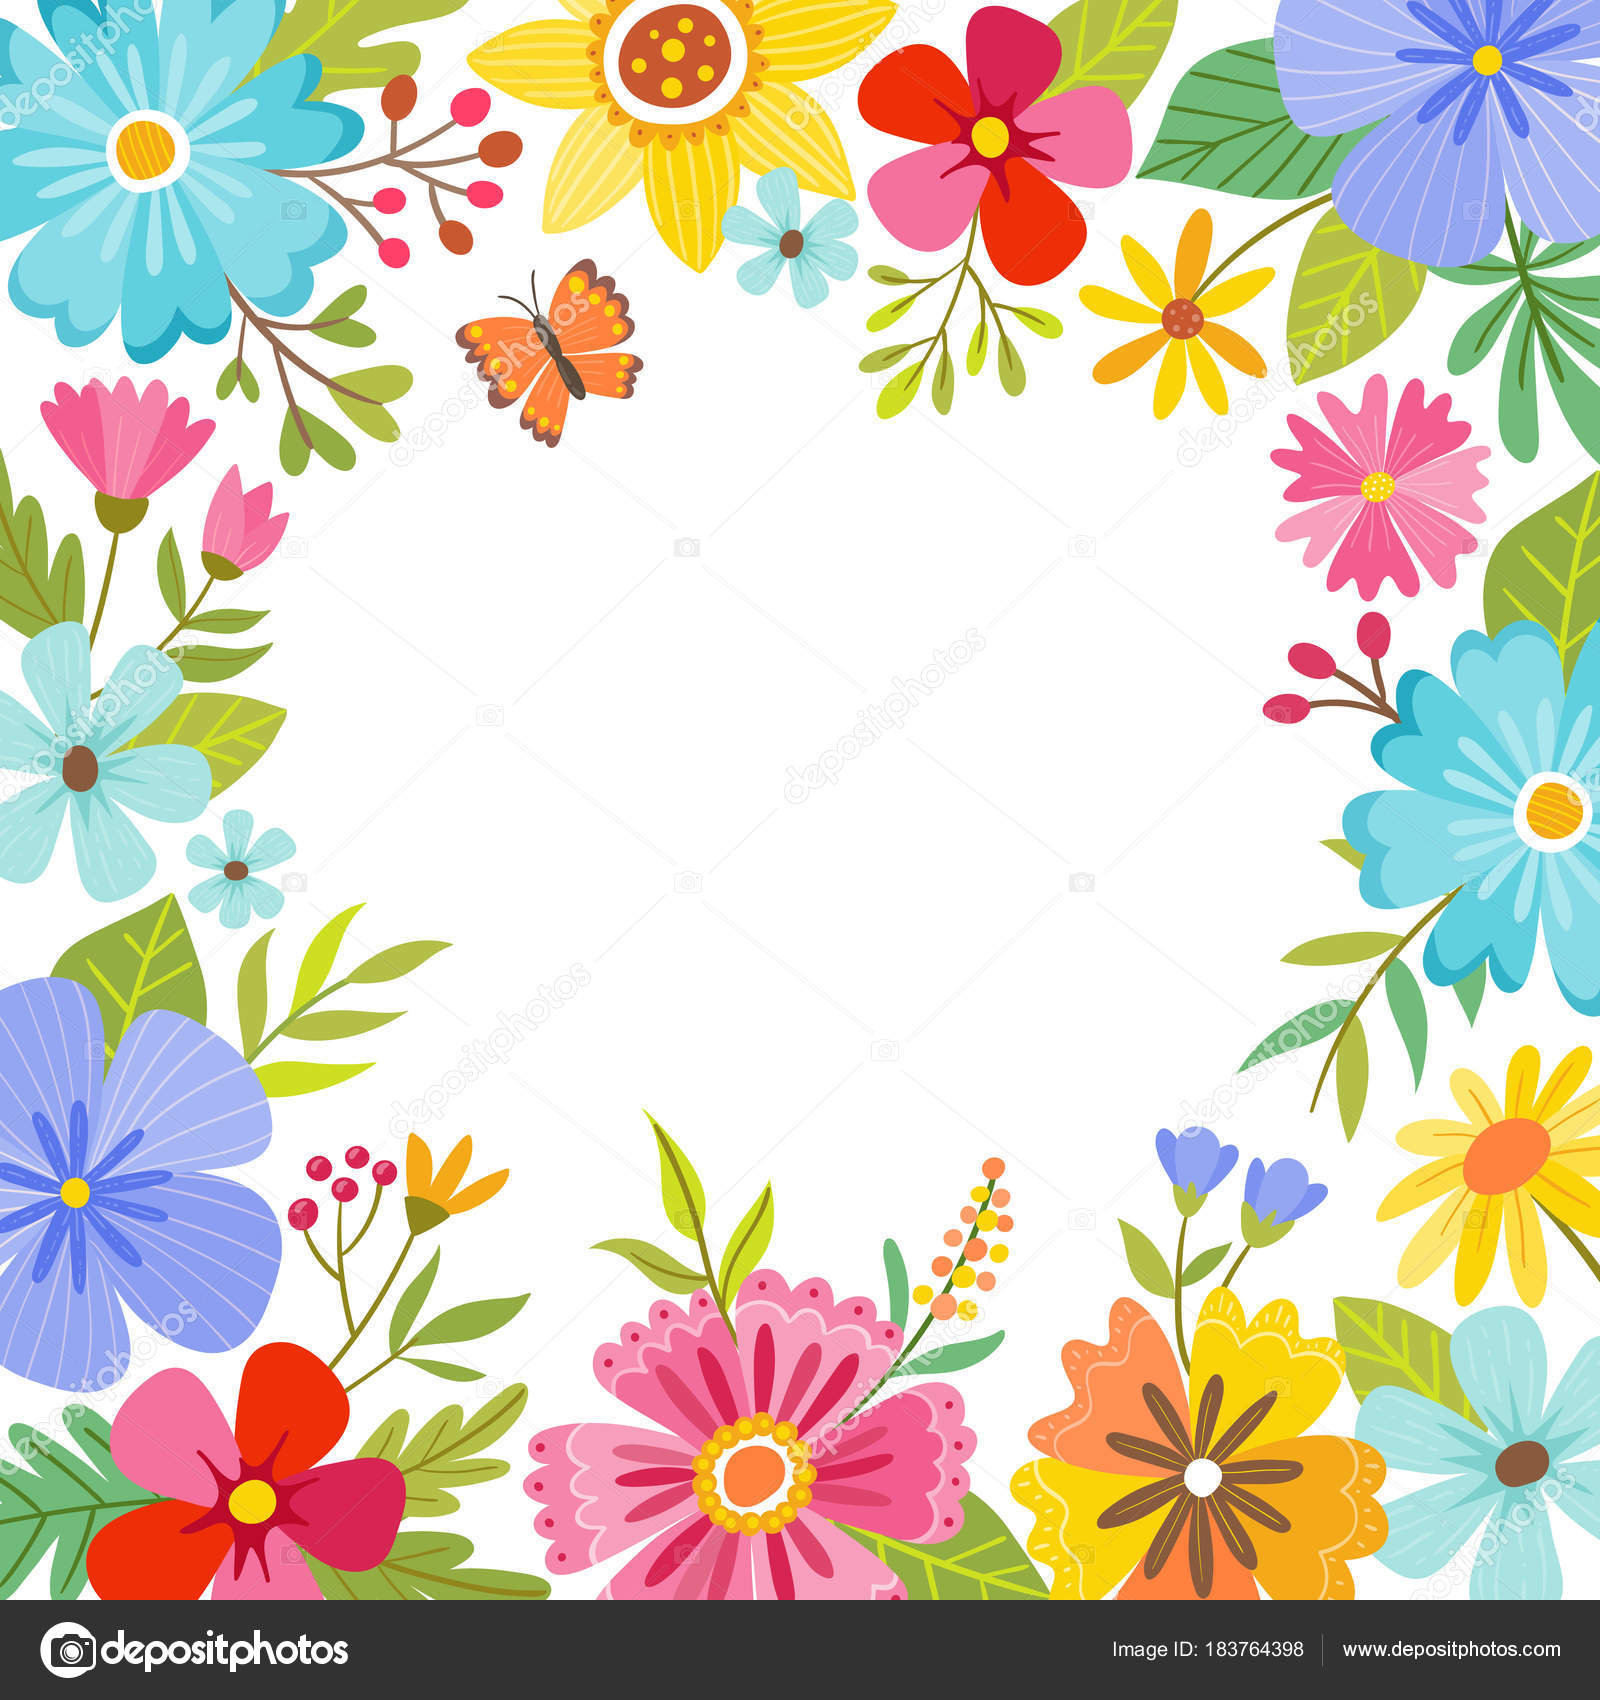 Cute Colorful Spring Floral Background Stock Vector C Insemar